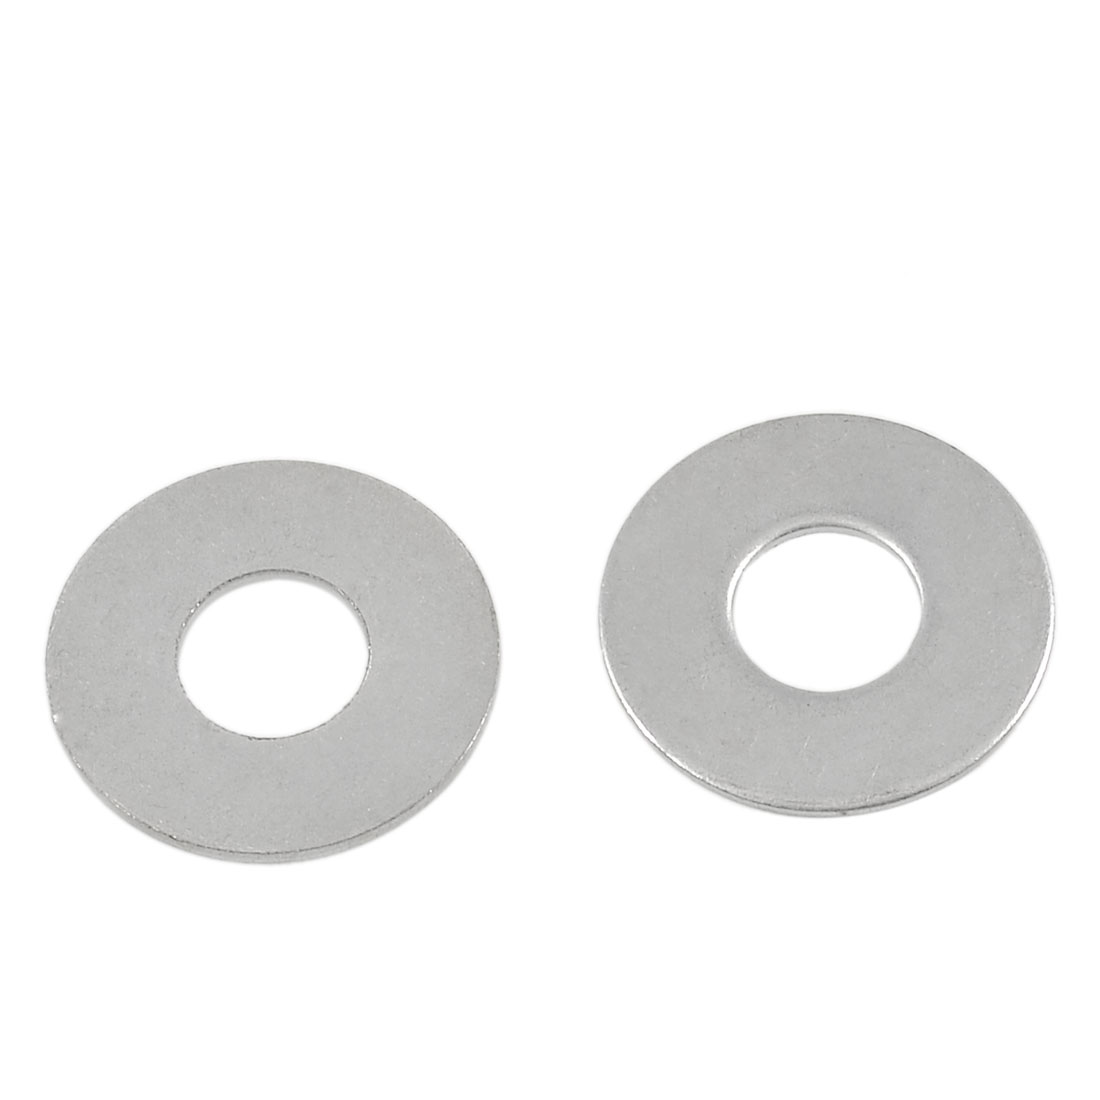 2 Pcs Round Silver Tone Metal Washer for Makita 5016 Chainsaw